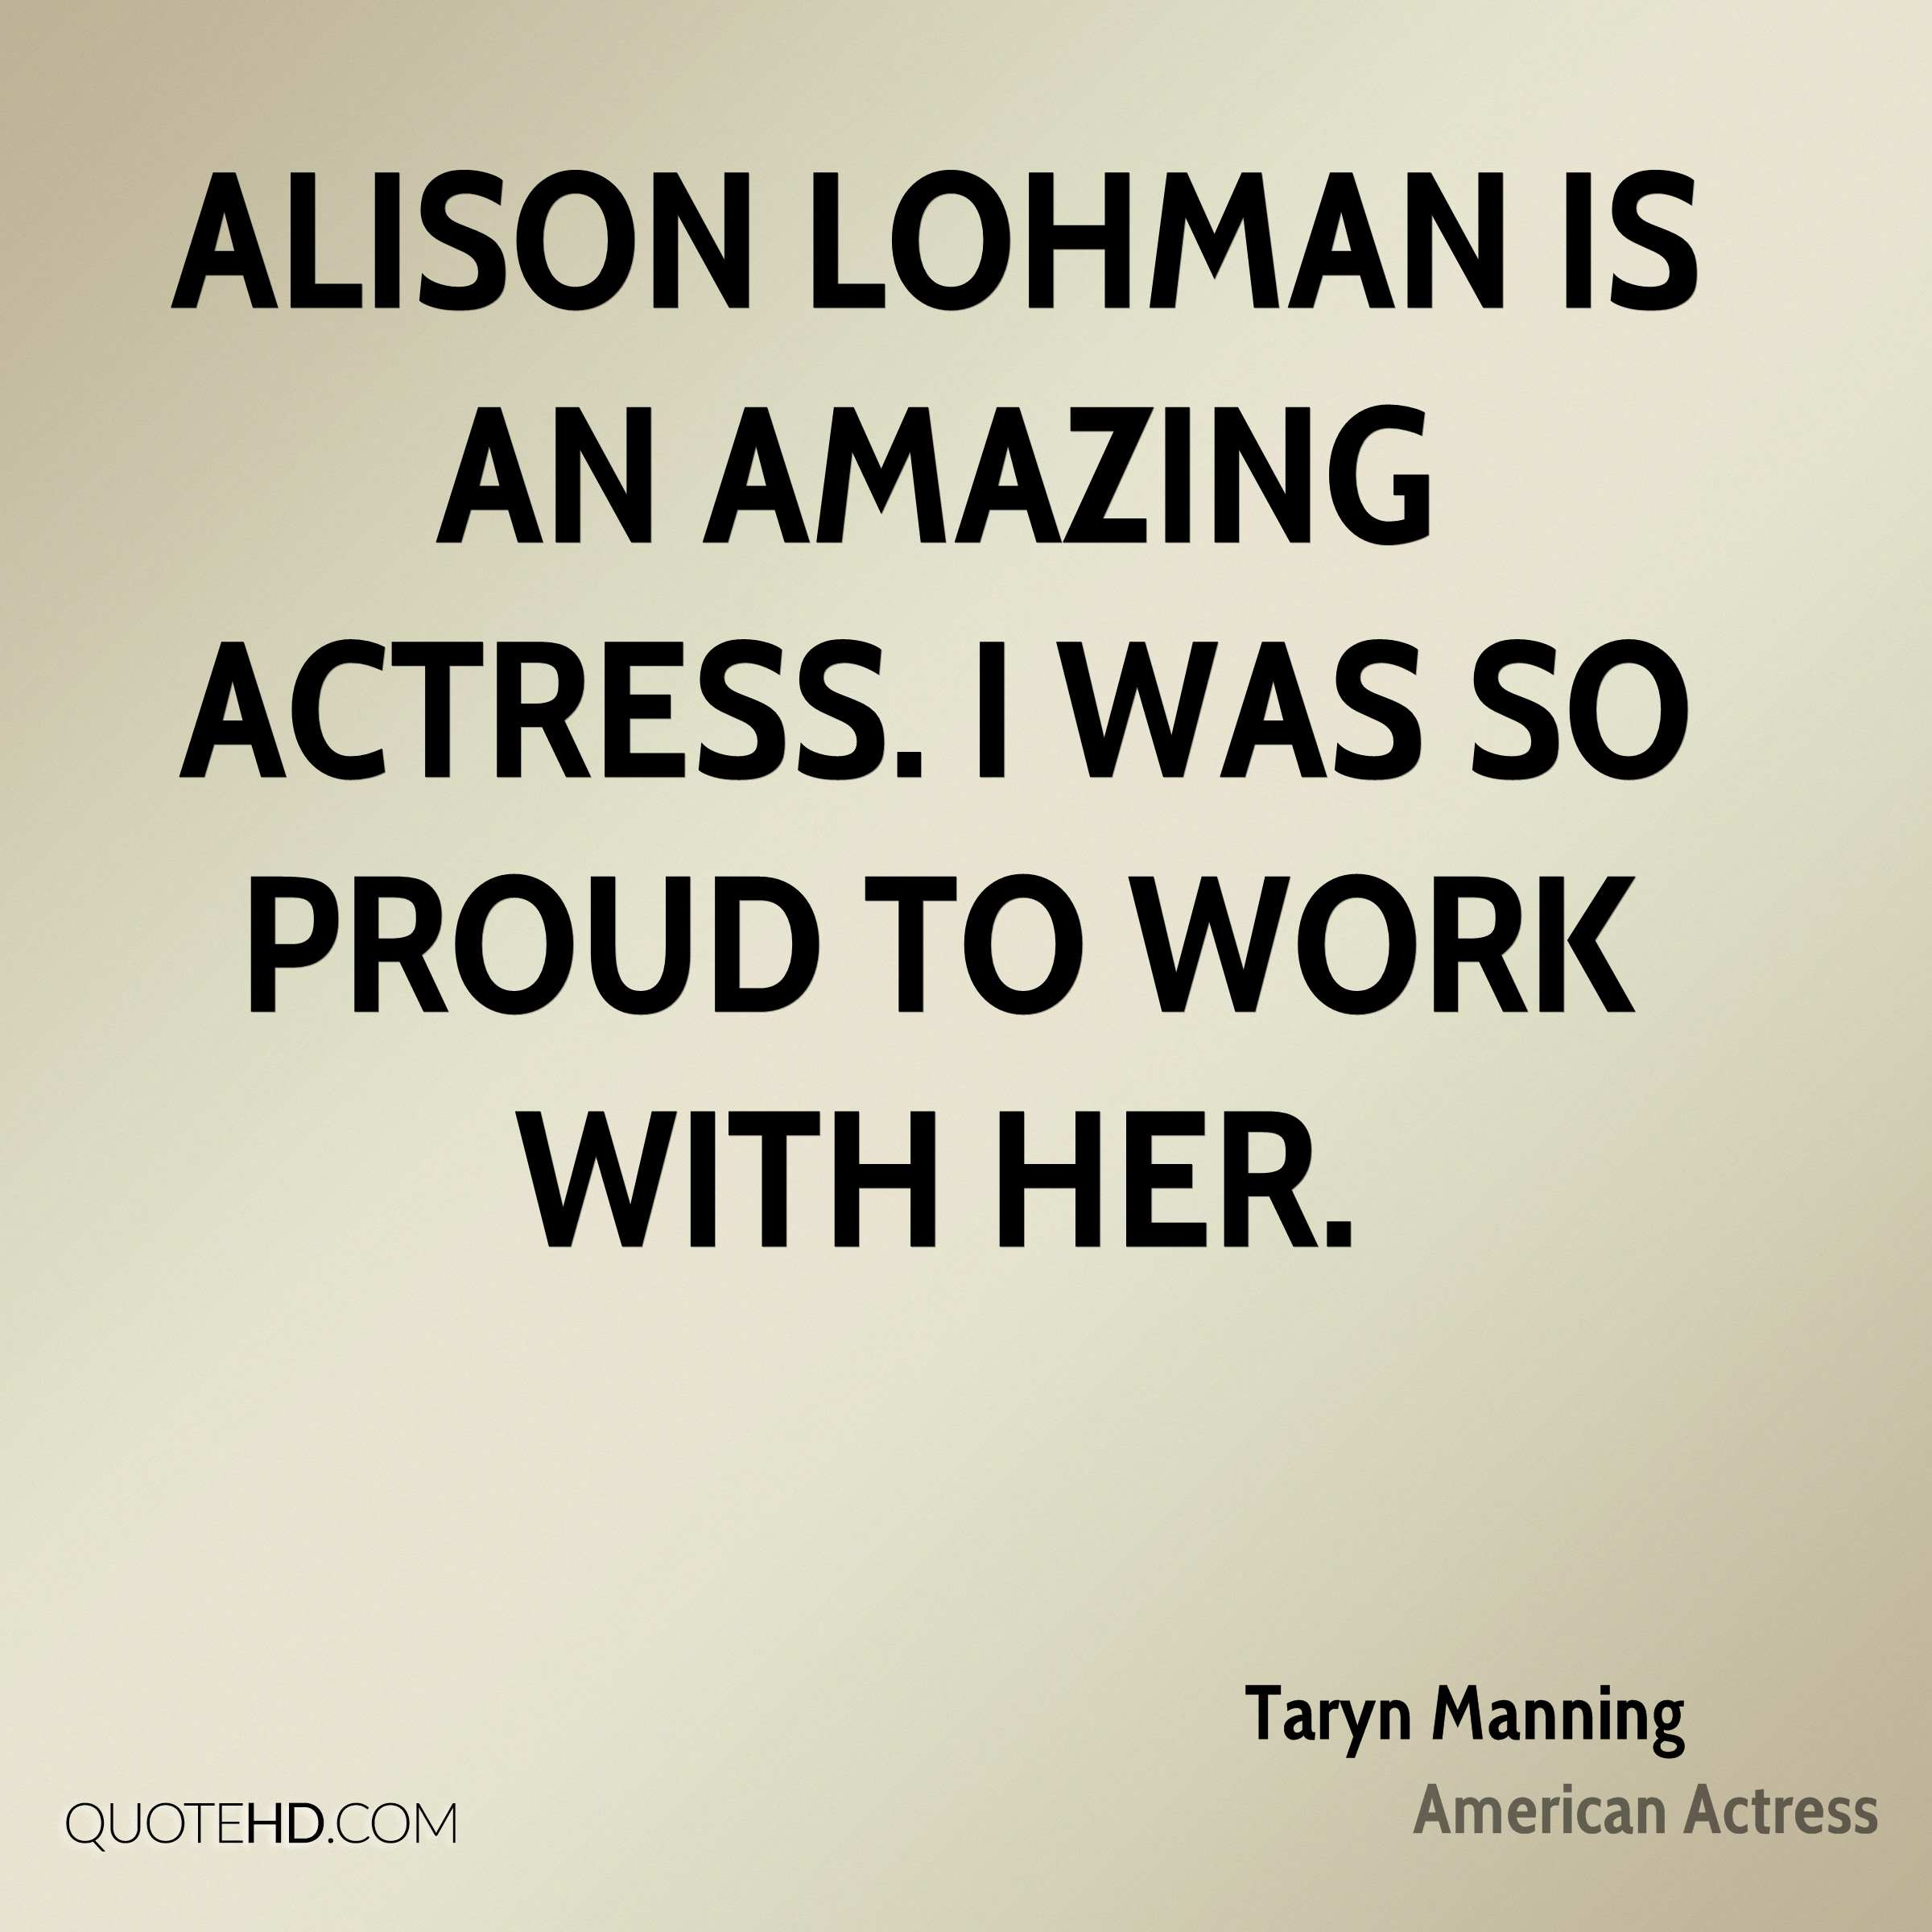 Alison Lohman is an amazing actress. I was so proud to work with her.